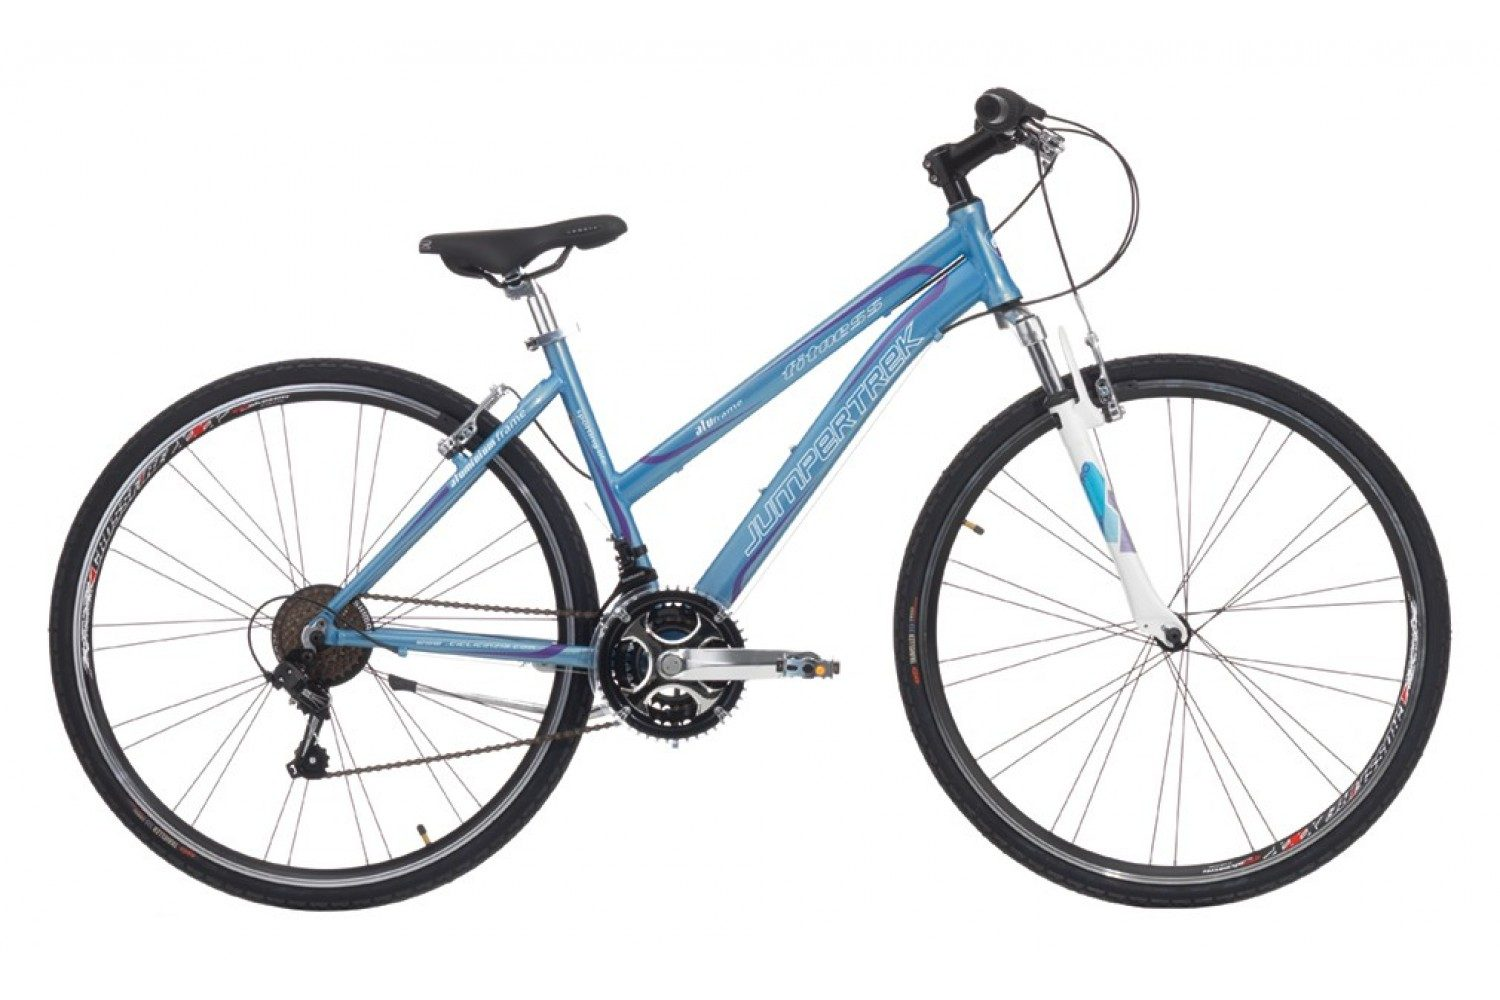 5. Cinzia Jumpertrek, City Bike, 700C